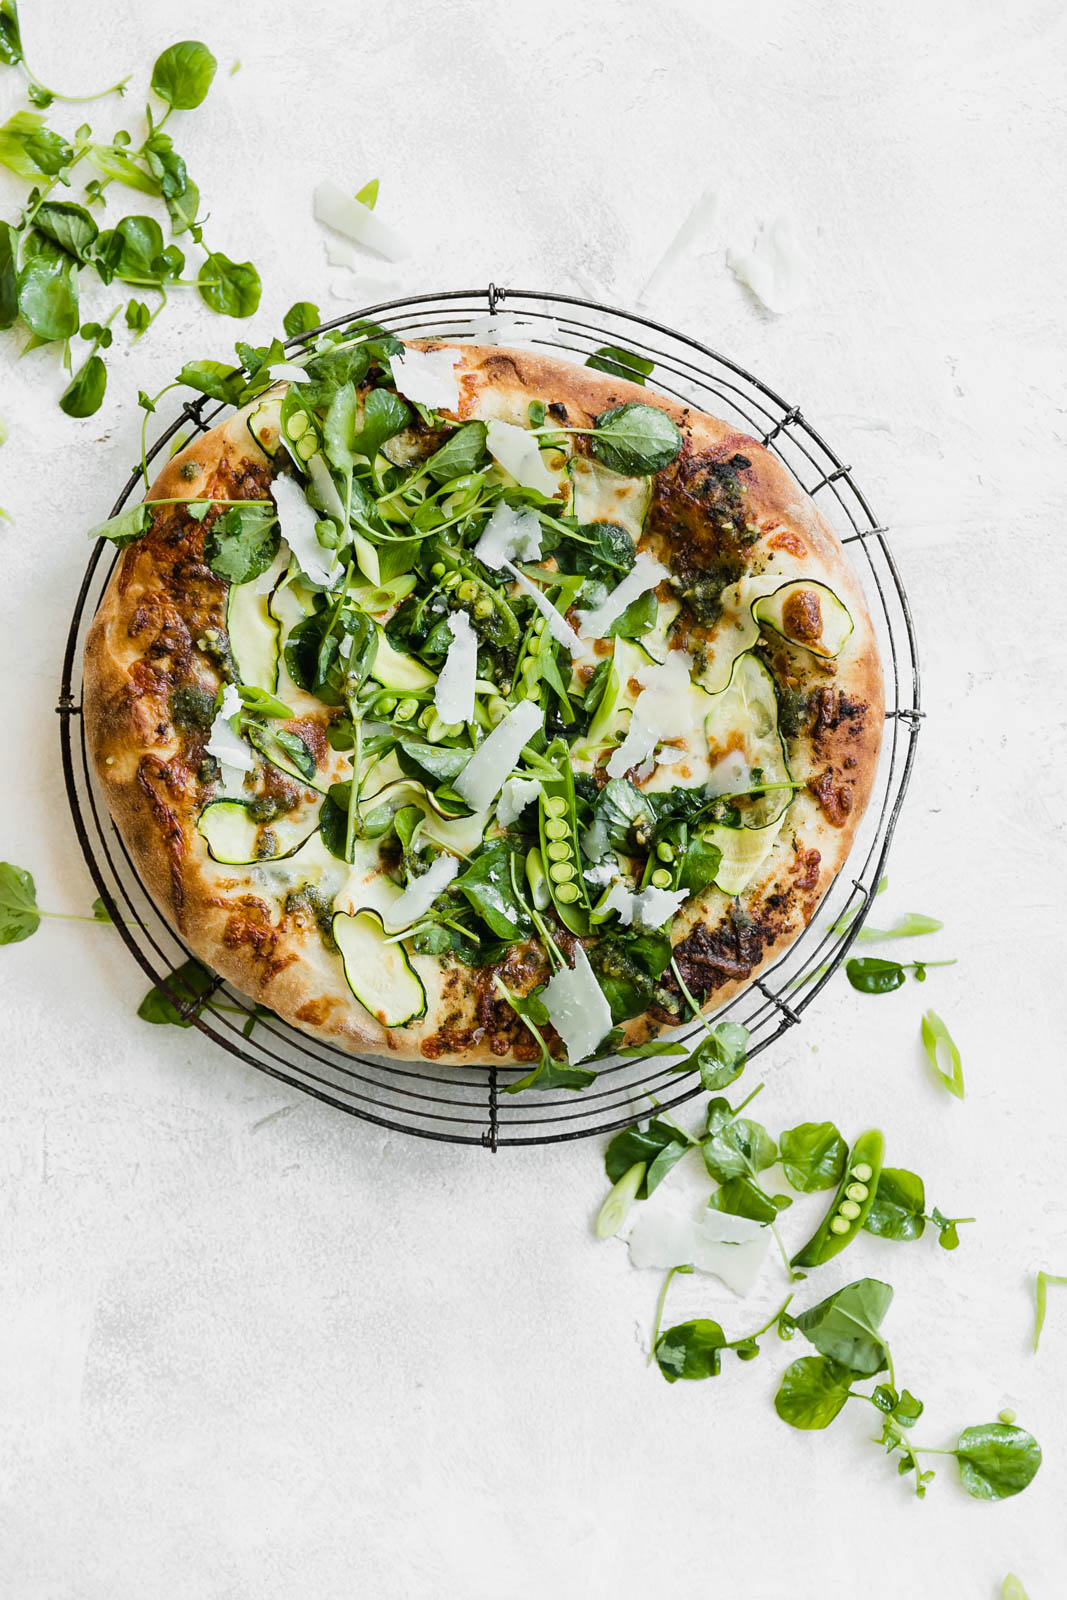 A Spring Green Goddess Pizza made with pesto, zucchini, spring peas, watercress, mozzarella, and a green goddess dressing.